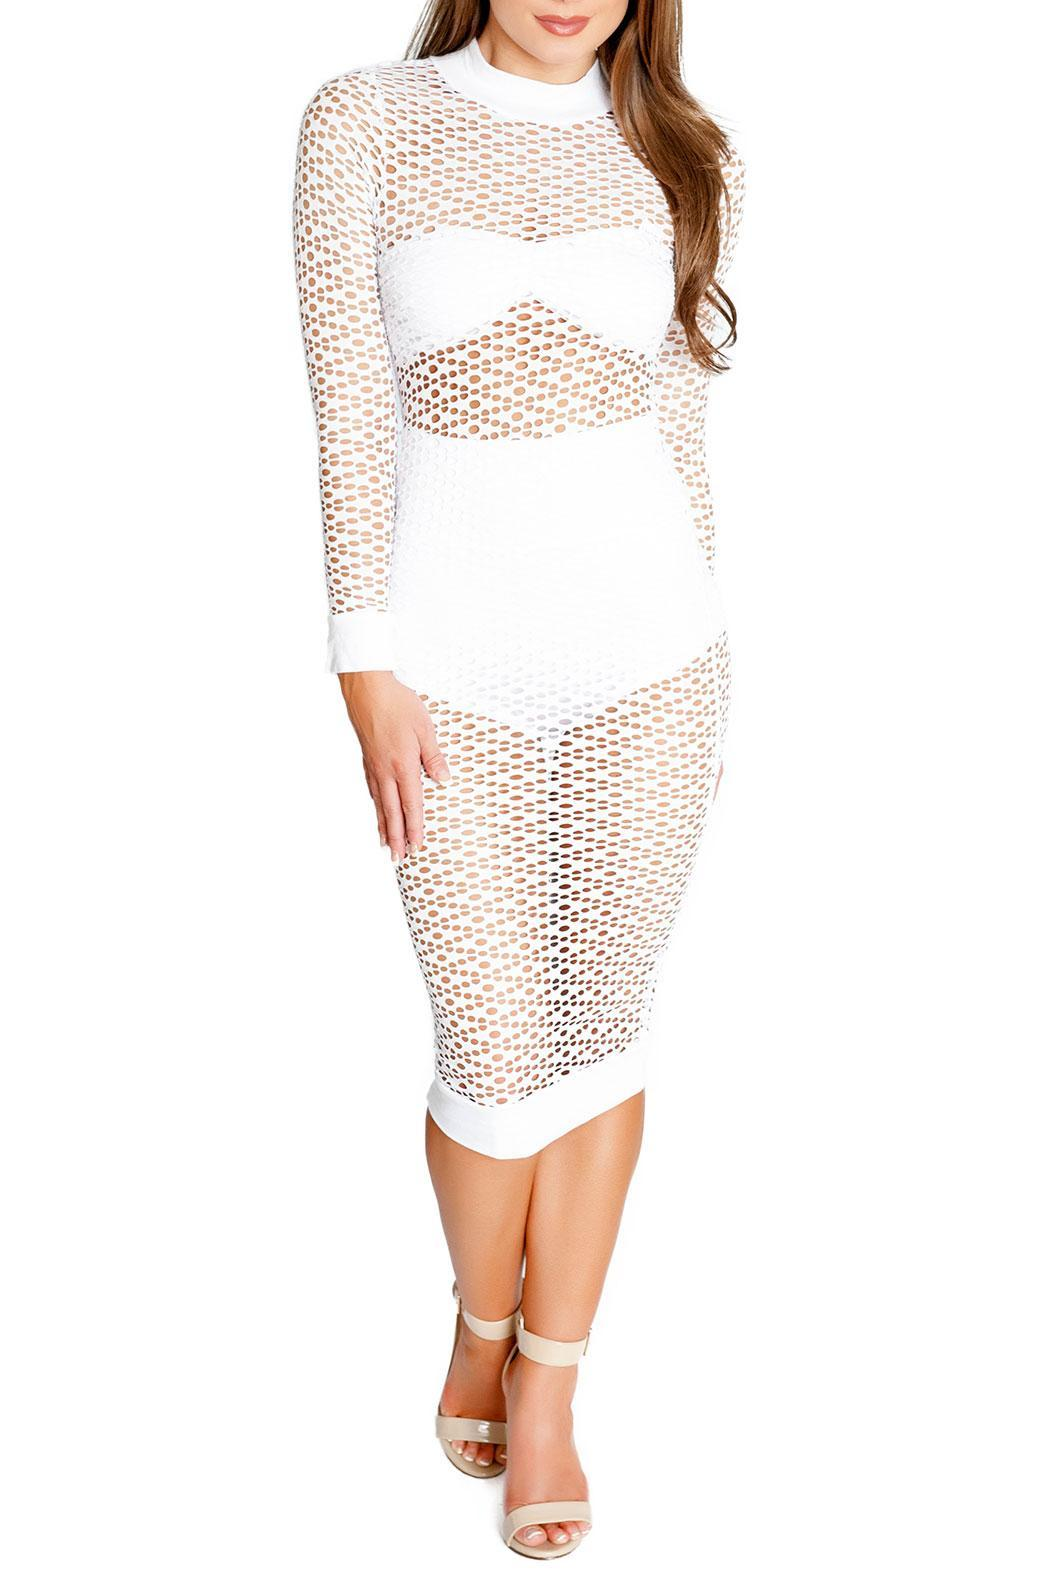 Chynna Dolls Maldives Oval Net Coverup - Front Cropped Image